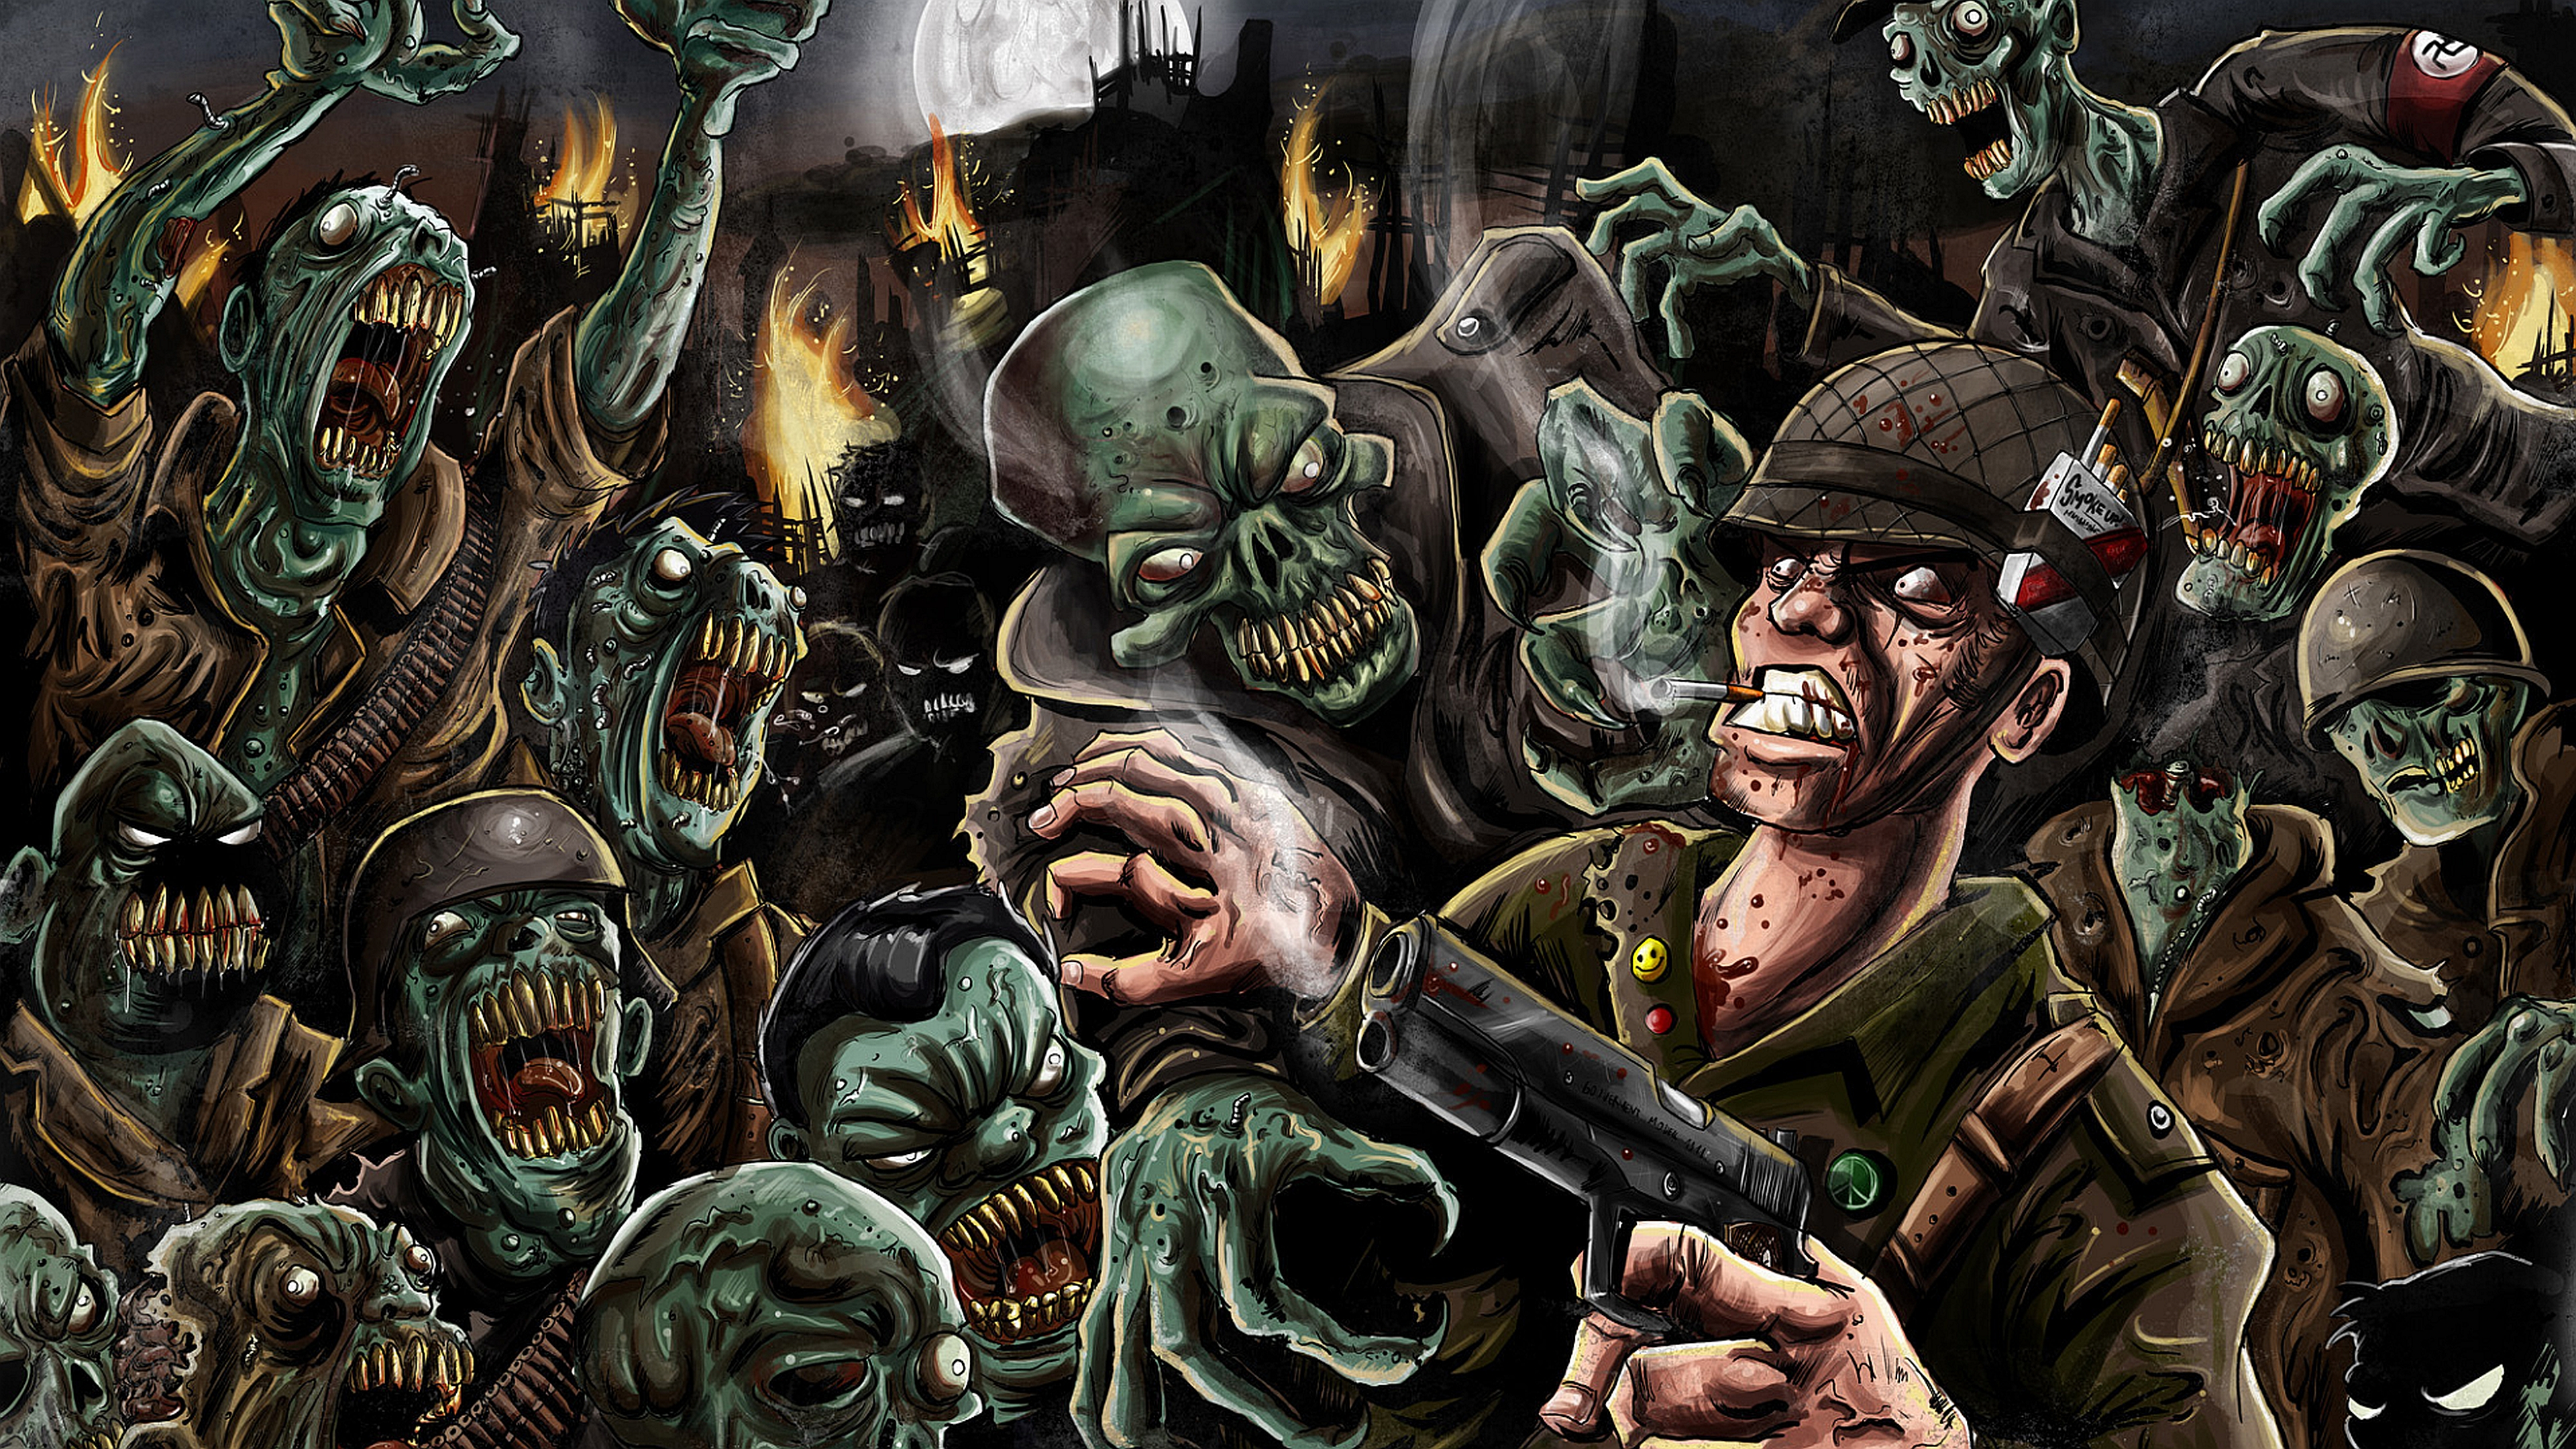 Hd wallpaper zombie - Hd Wallpaper Zombie 42